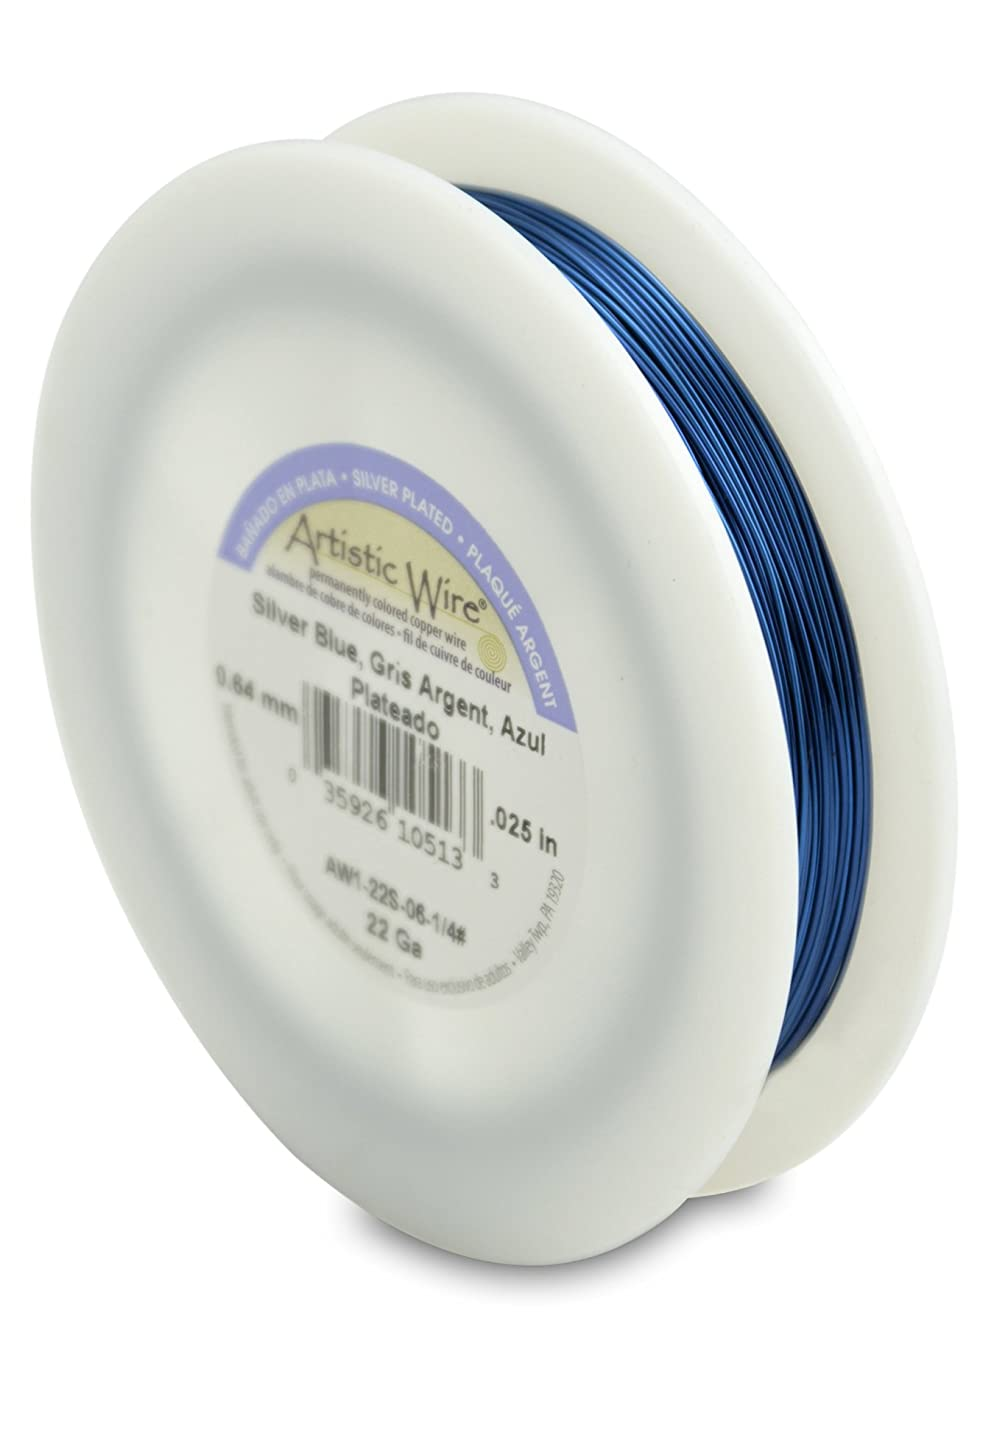 Artistic Wire 22-Gauge Silver Plated Silver Blue Wire, 1/4-Pound